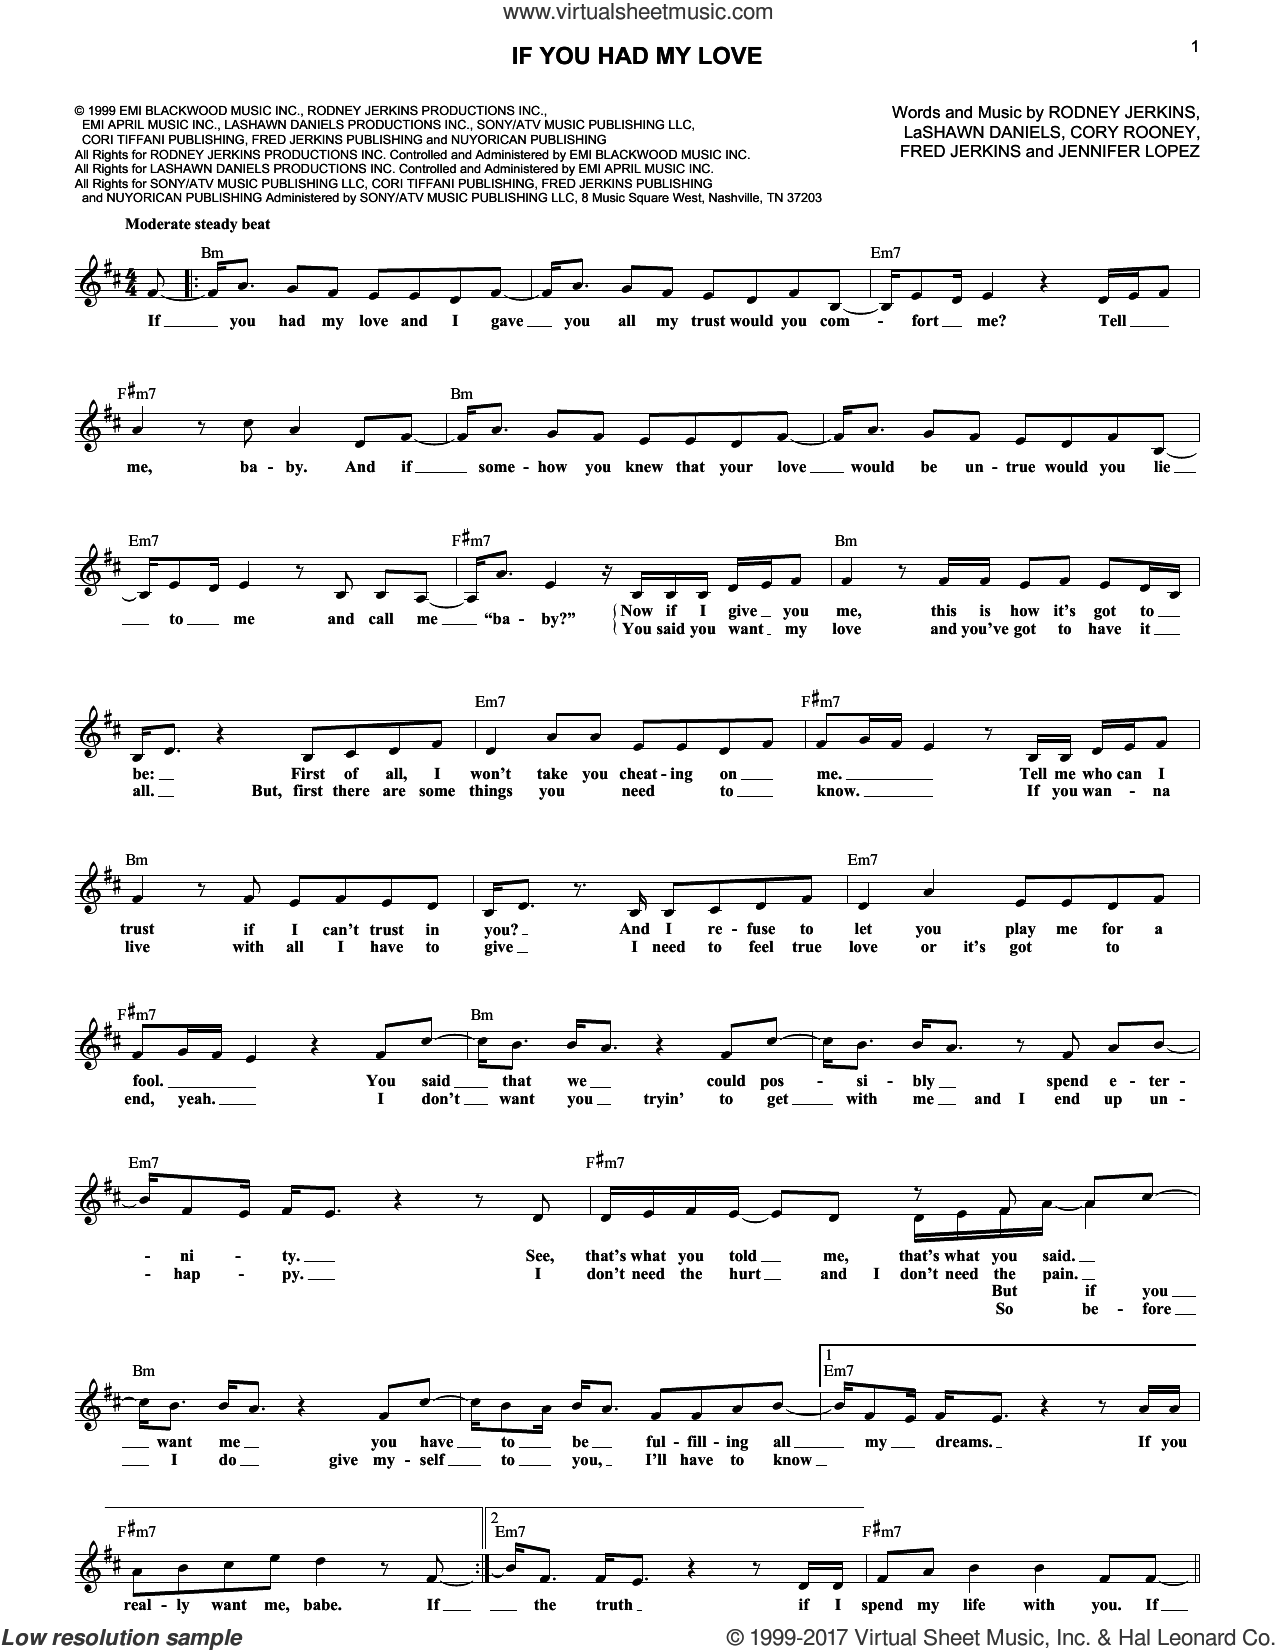 If You Had My Love sheet music for voice and other instruments (fake book) by Jennifer Lopez, Cory Rooney, Fred Jerkins, LaShawn Daniels and Rodney Jerkins, intermediate skill level